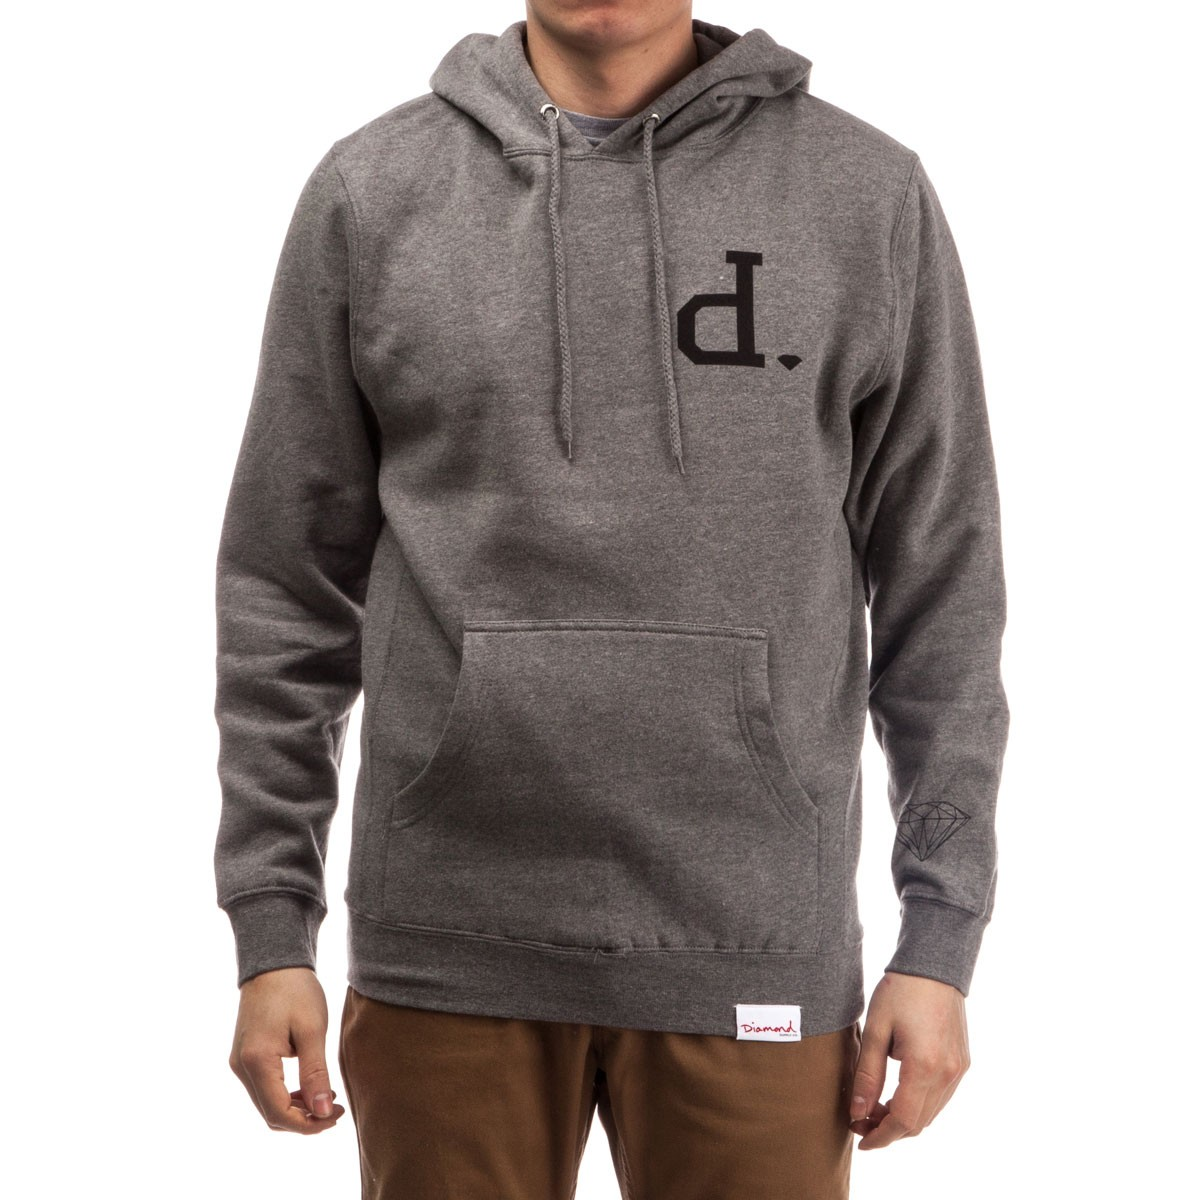 Supply Co. Un-Polo Pullover Hoodie - Gunmetal Heather